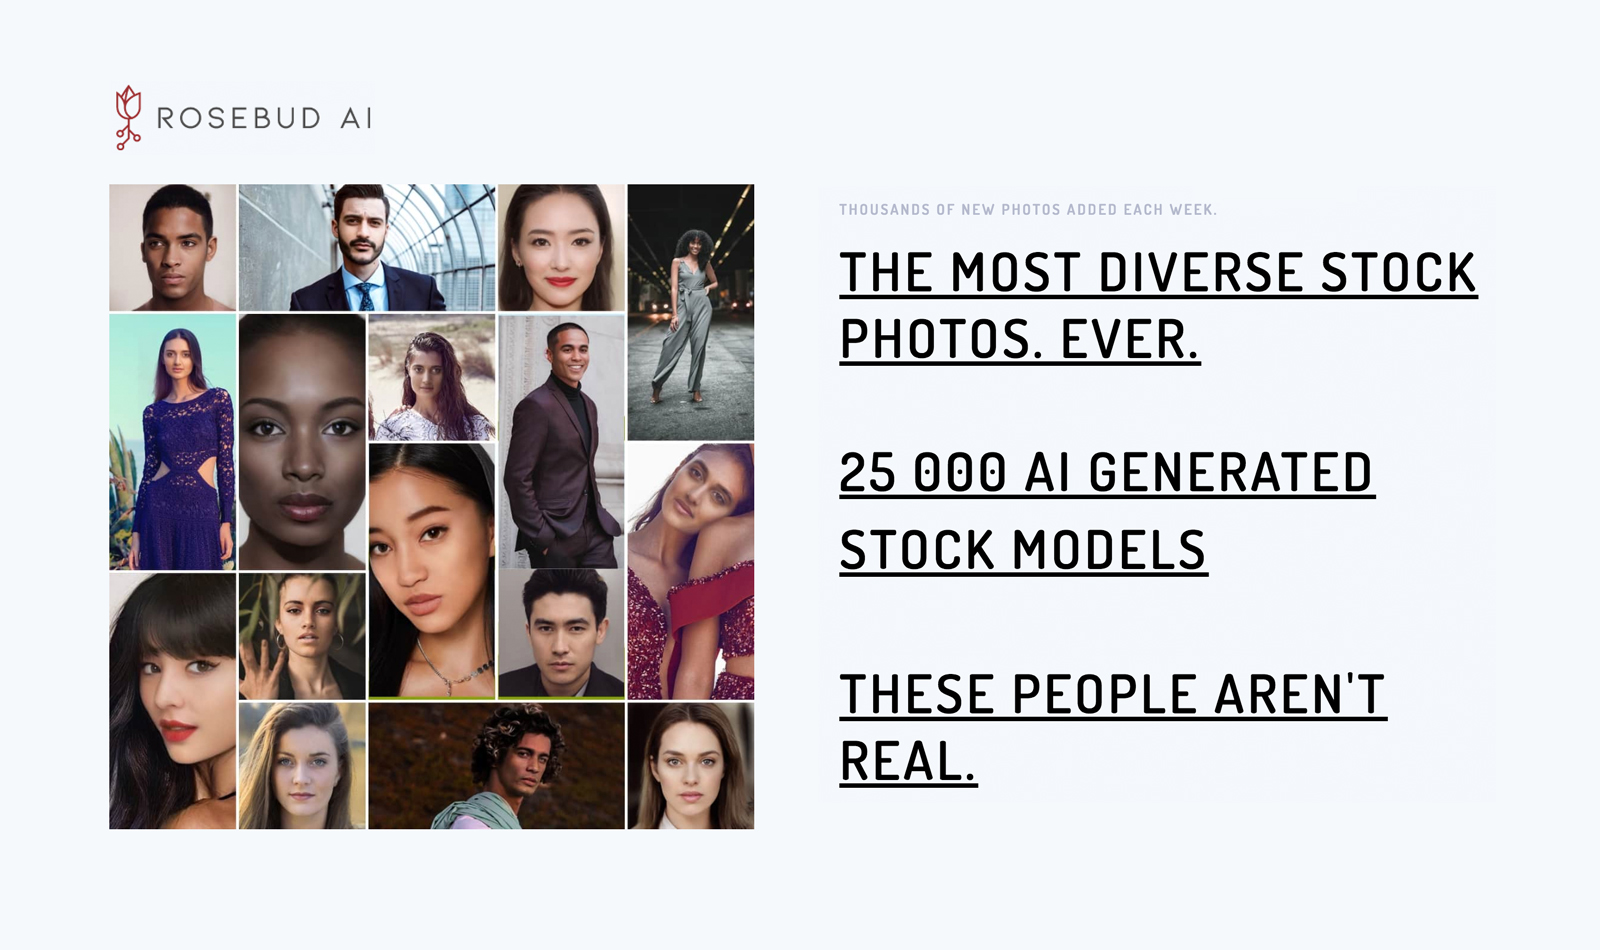 The most diverse stock photos ever. 25000 AI generated stock models. These people aren't real.